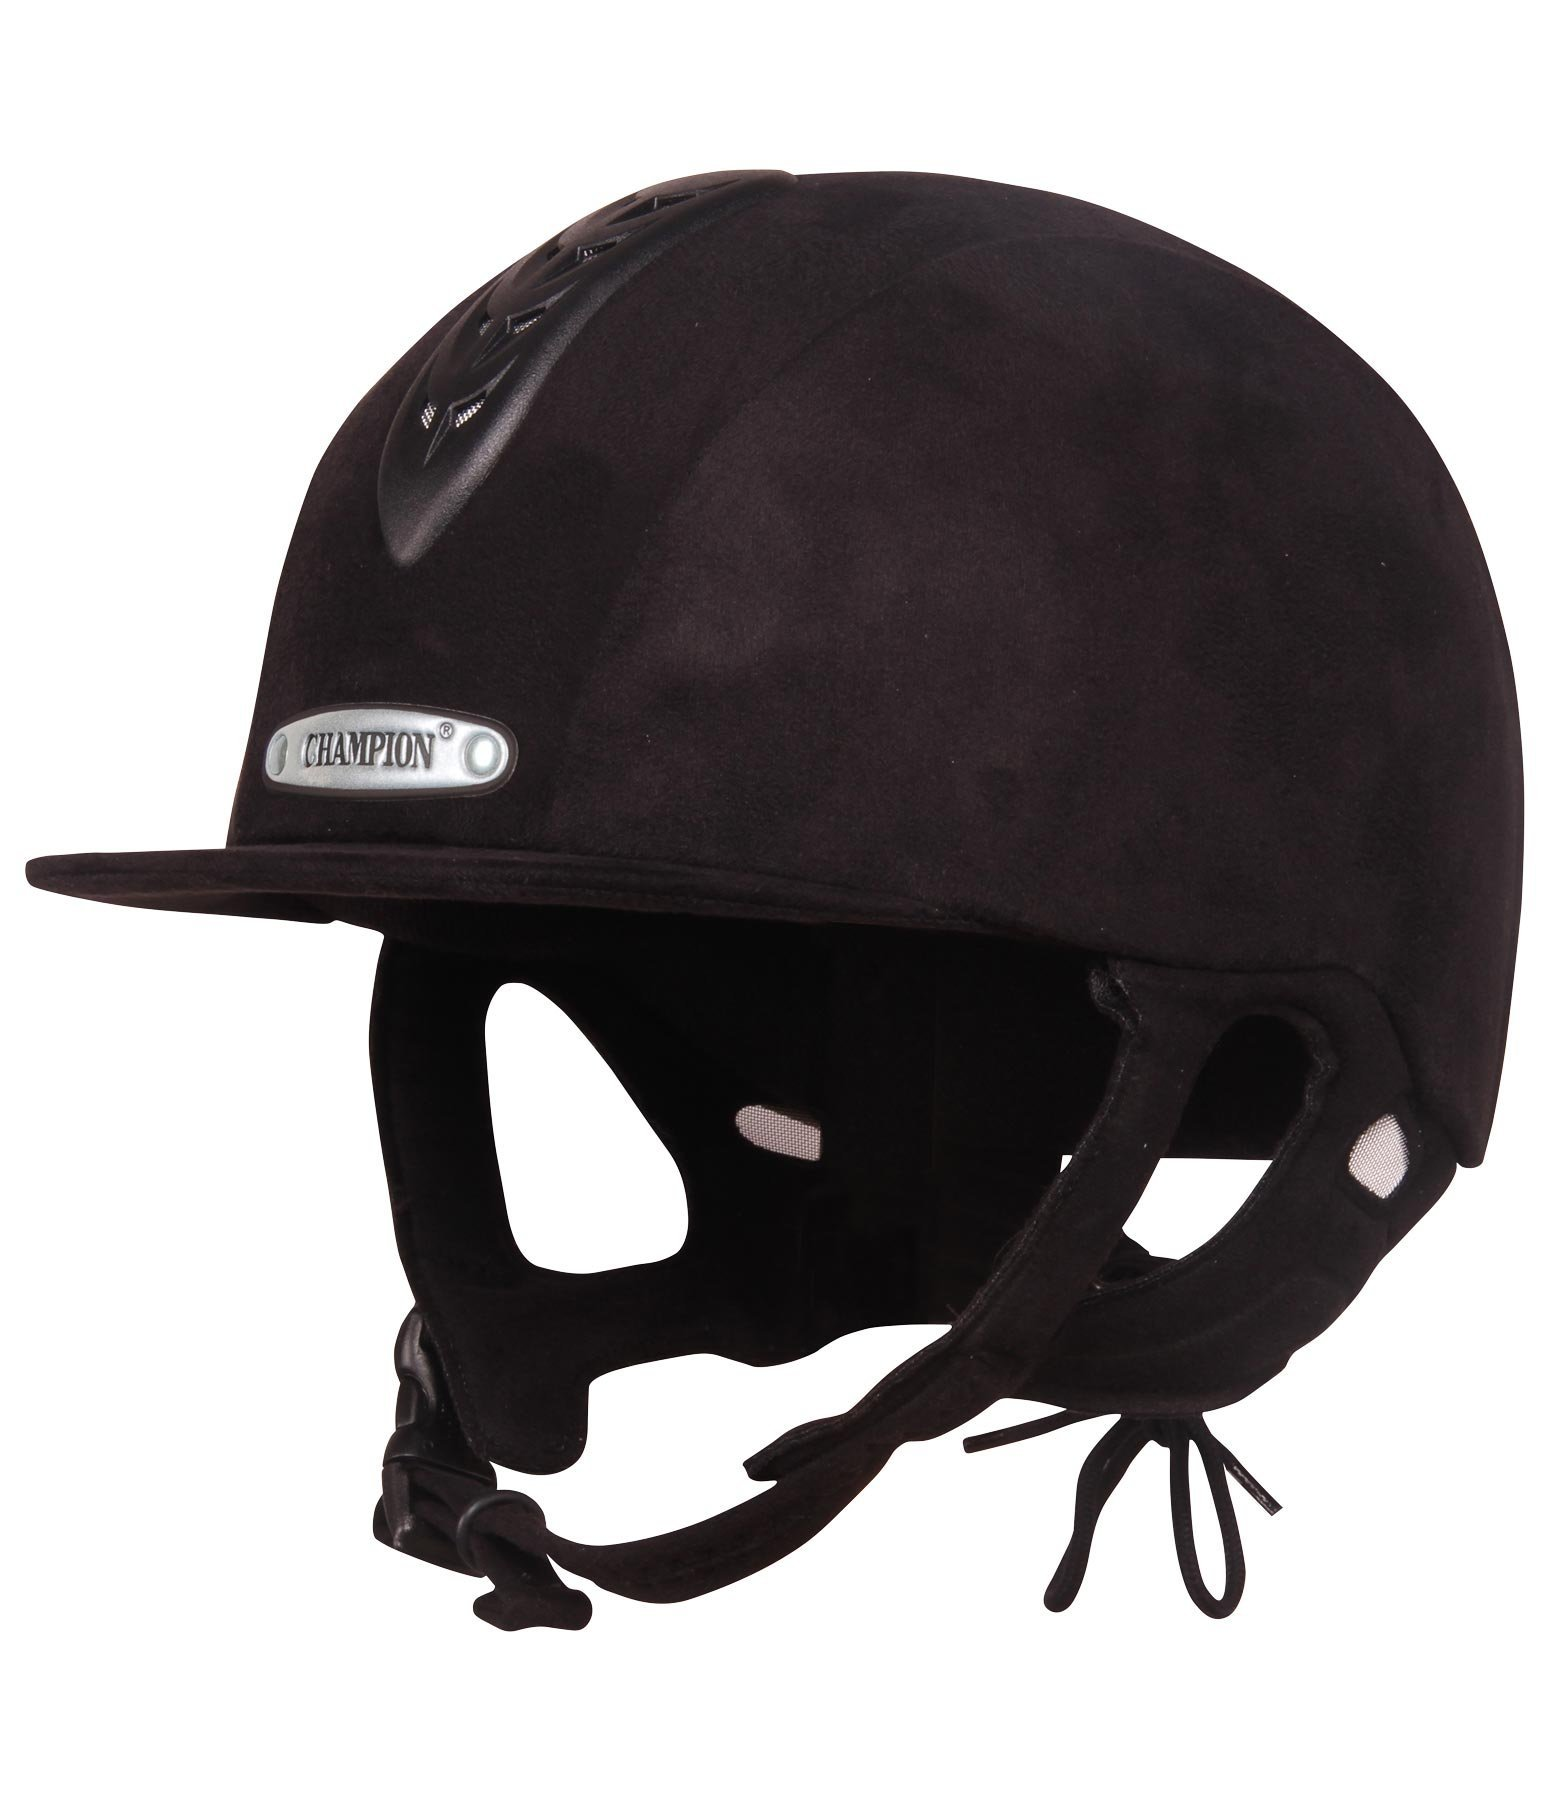 df78200482c86 germany champion ventair lycra riding hat covers 0961a 98324  order champion  junior x air plus riding hat 780178 65 8 s 87a3a b2ea2